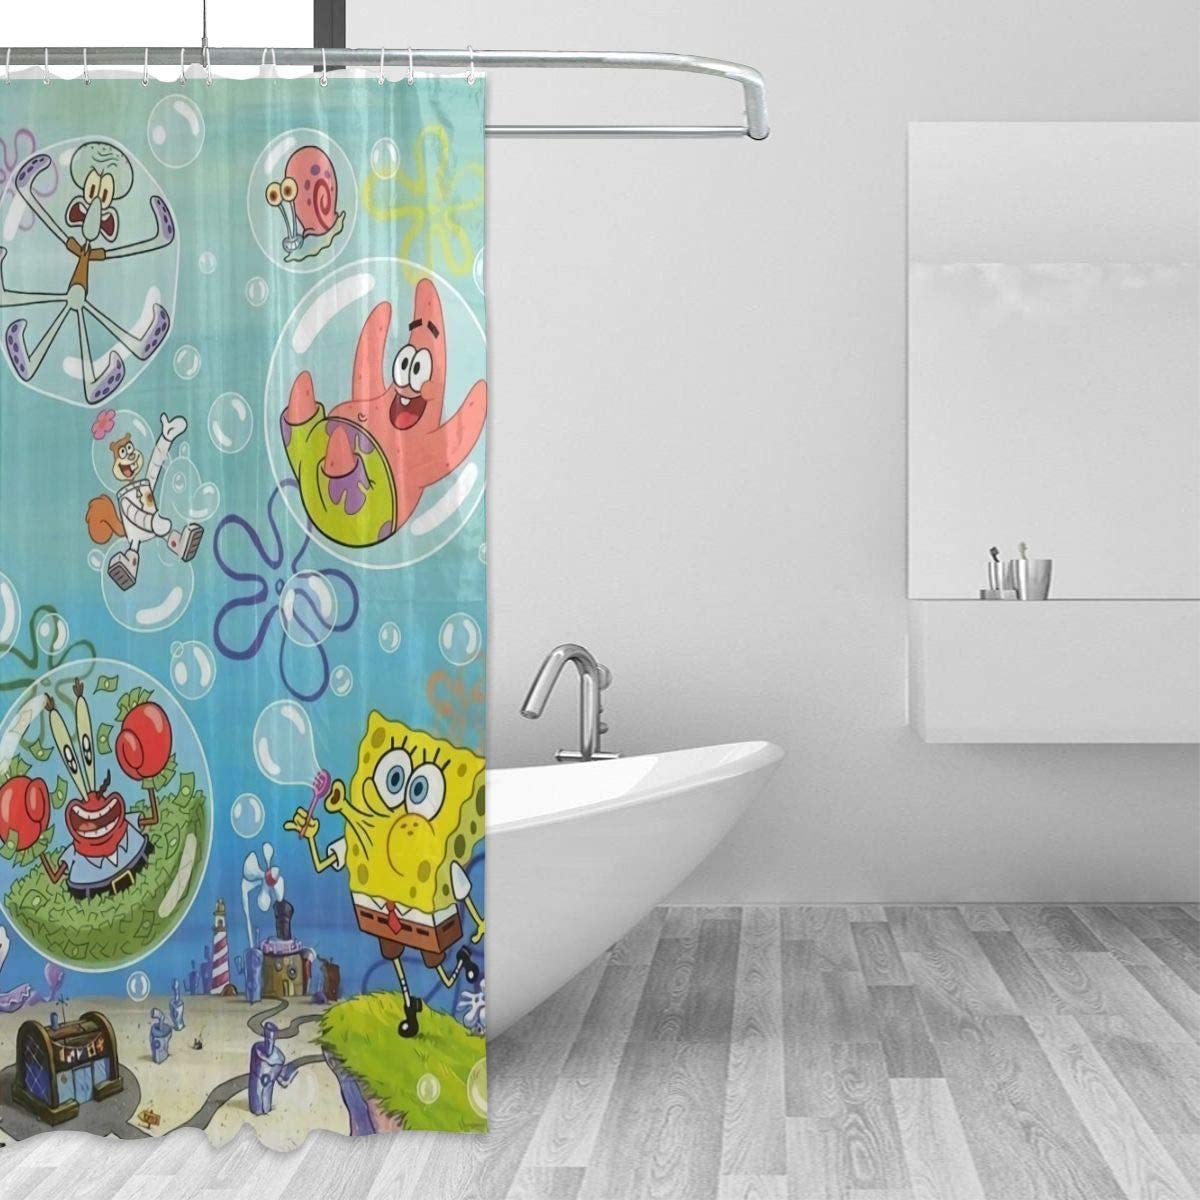 Amazon Com Spongebob Blowing Bubbles With Hook Shower Curtain 36x72 Waterproof Thick Bathroom Plastic Shower Curtains Home Kitchen